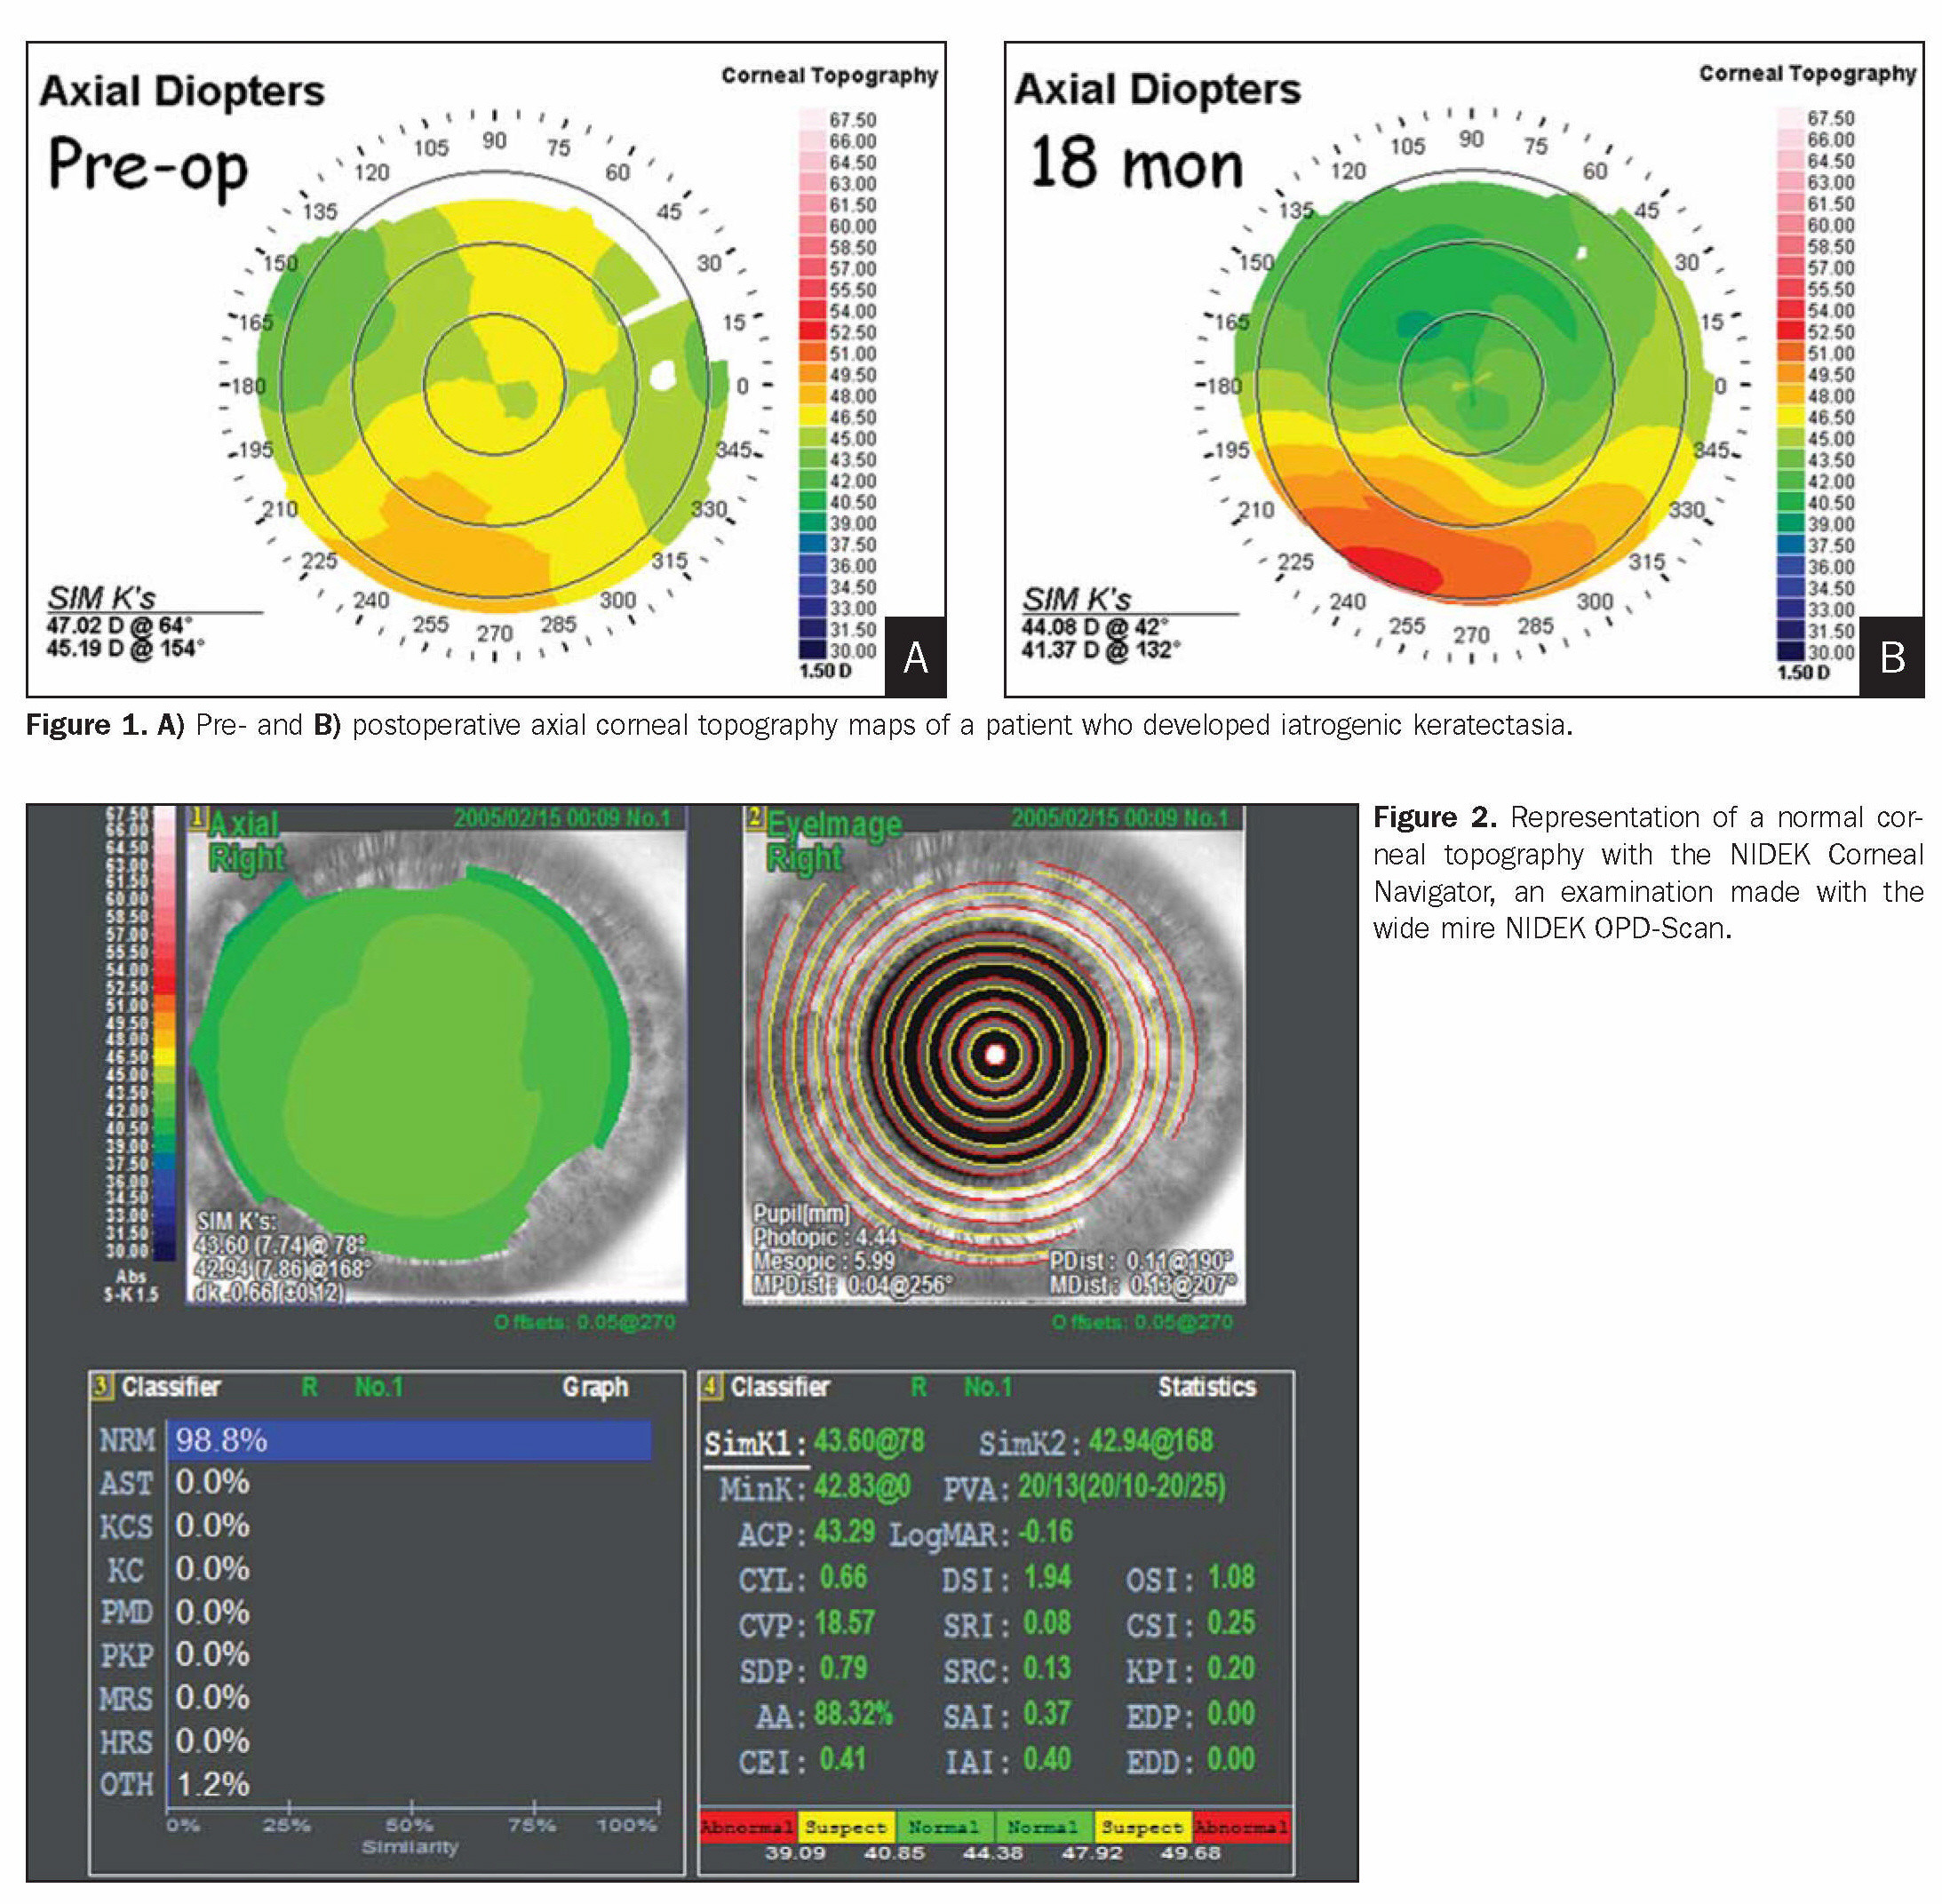 Figure 1. A) Pre- and B) postoperative axial corneal topography maps of a patient who developed iatrogenic keratectasia.Figure 2. Representation of a normal corneal topography with the NIDEK Corneal Navigator, an examination made with the wide mire NIDEK OPD-Scan.